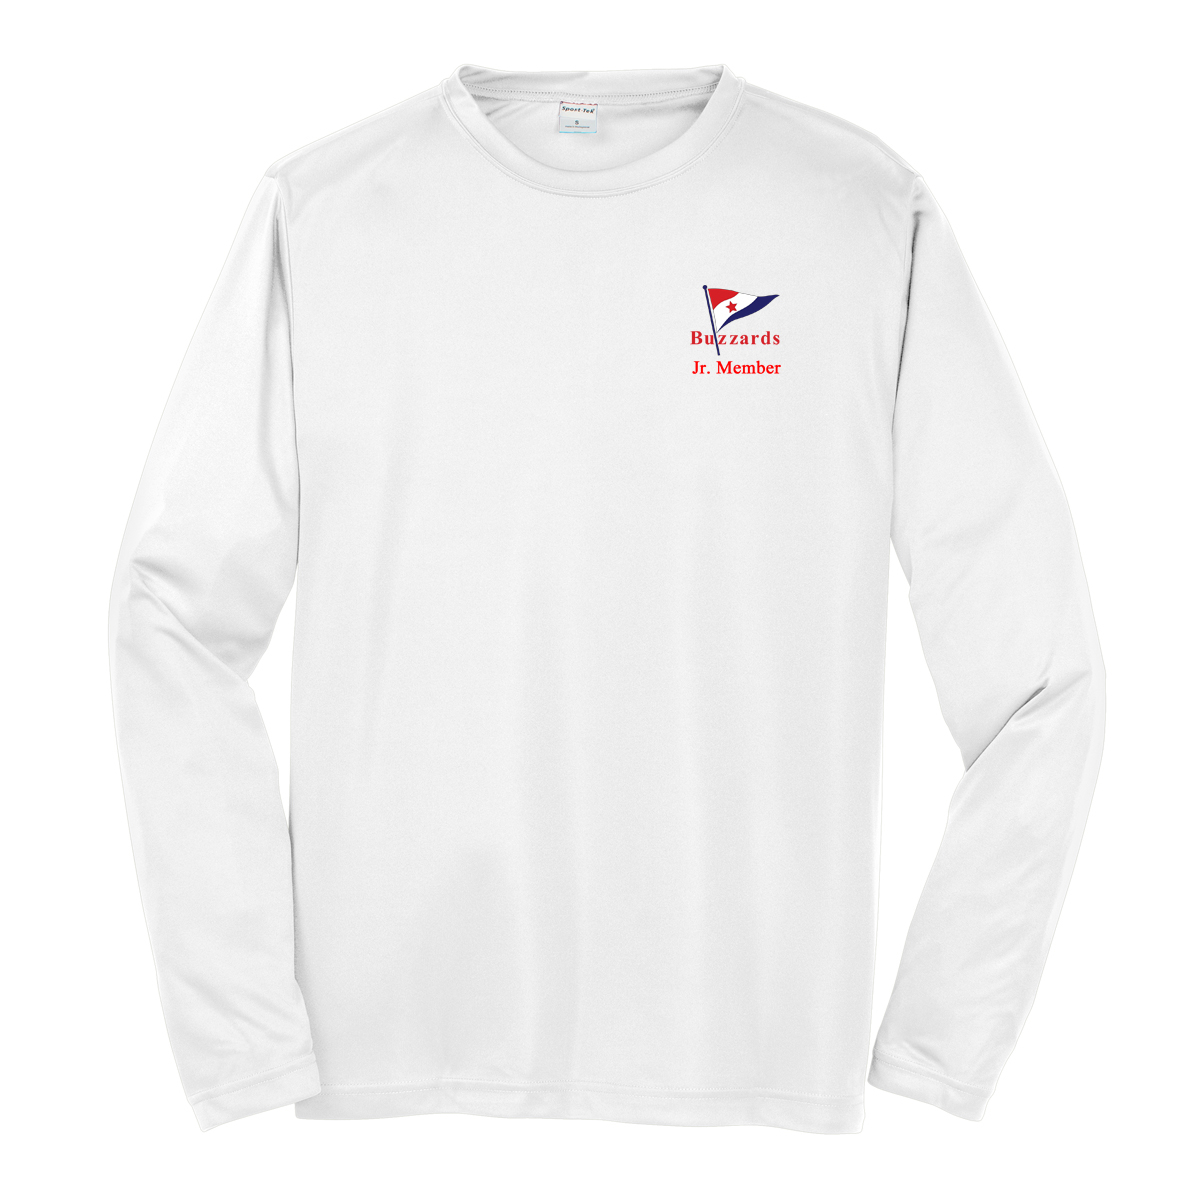 Buzzards Yacht Club - Kid's Long Sleeve Junior Member Cotton Tee (BUZ226)